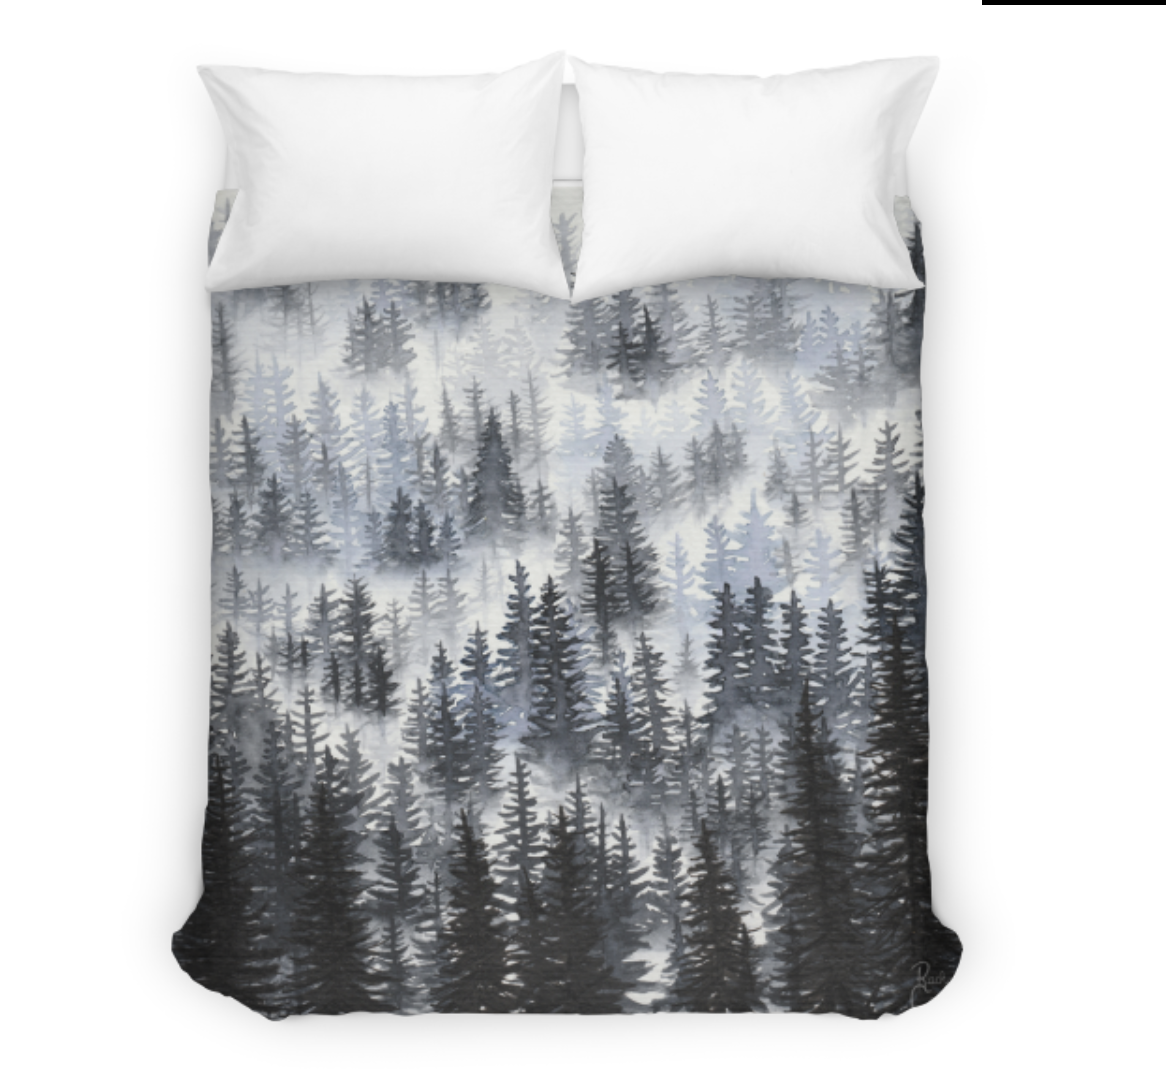 Tree Talker Art Misty Forest Bedspread